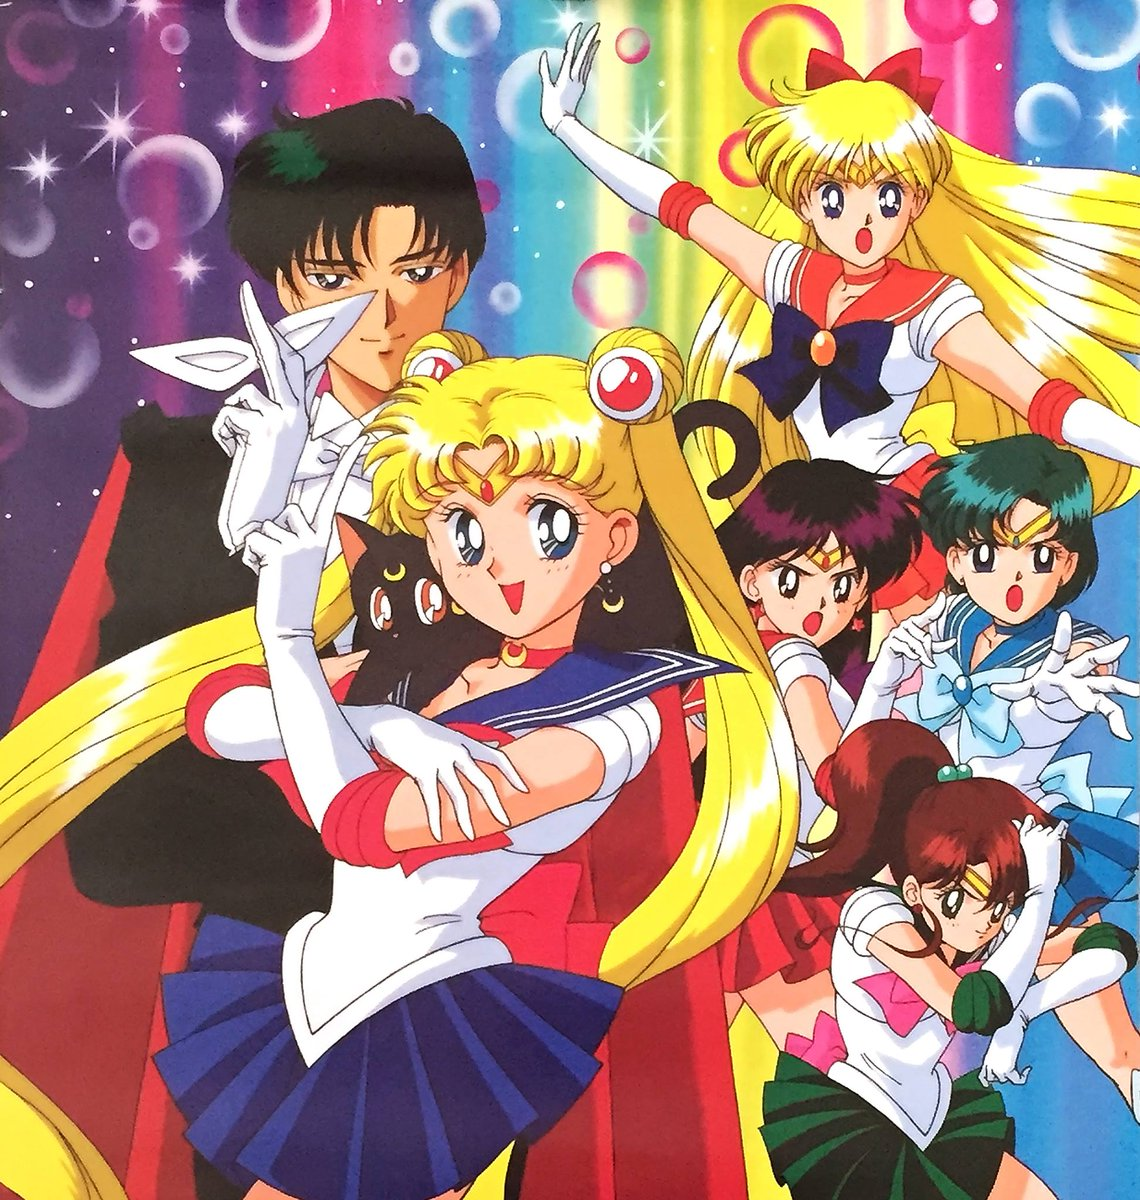 Replying to @HourlyUsagi: #SailorMoon #セーラームーン